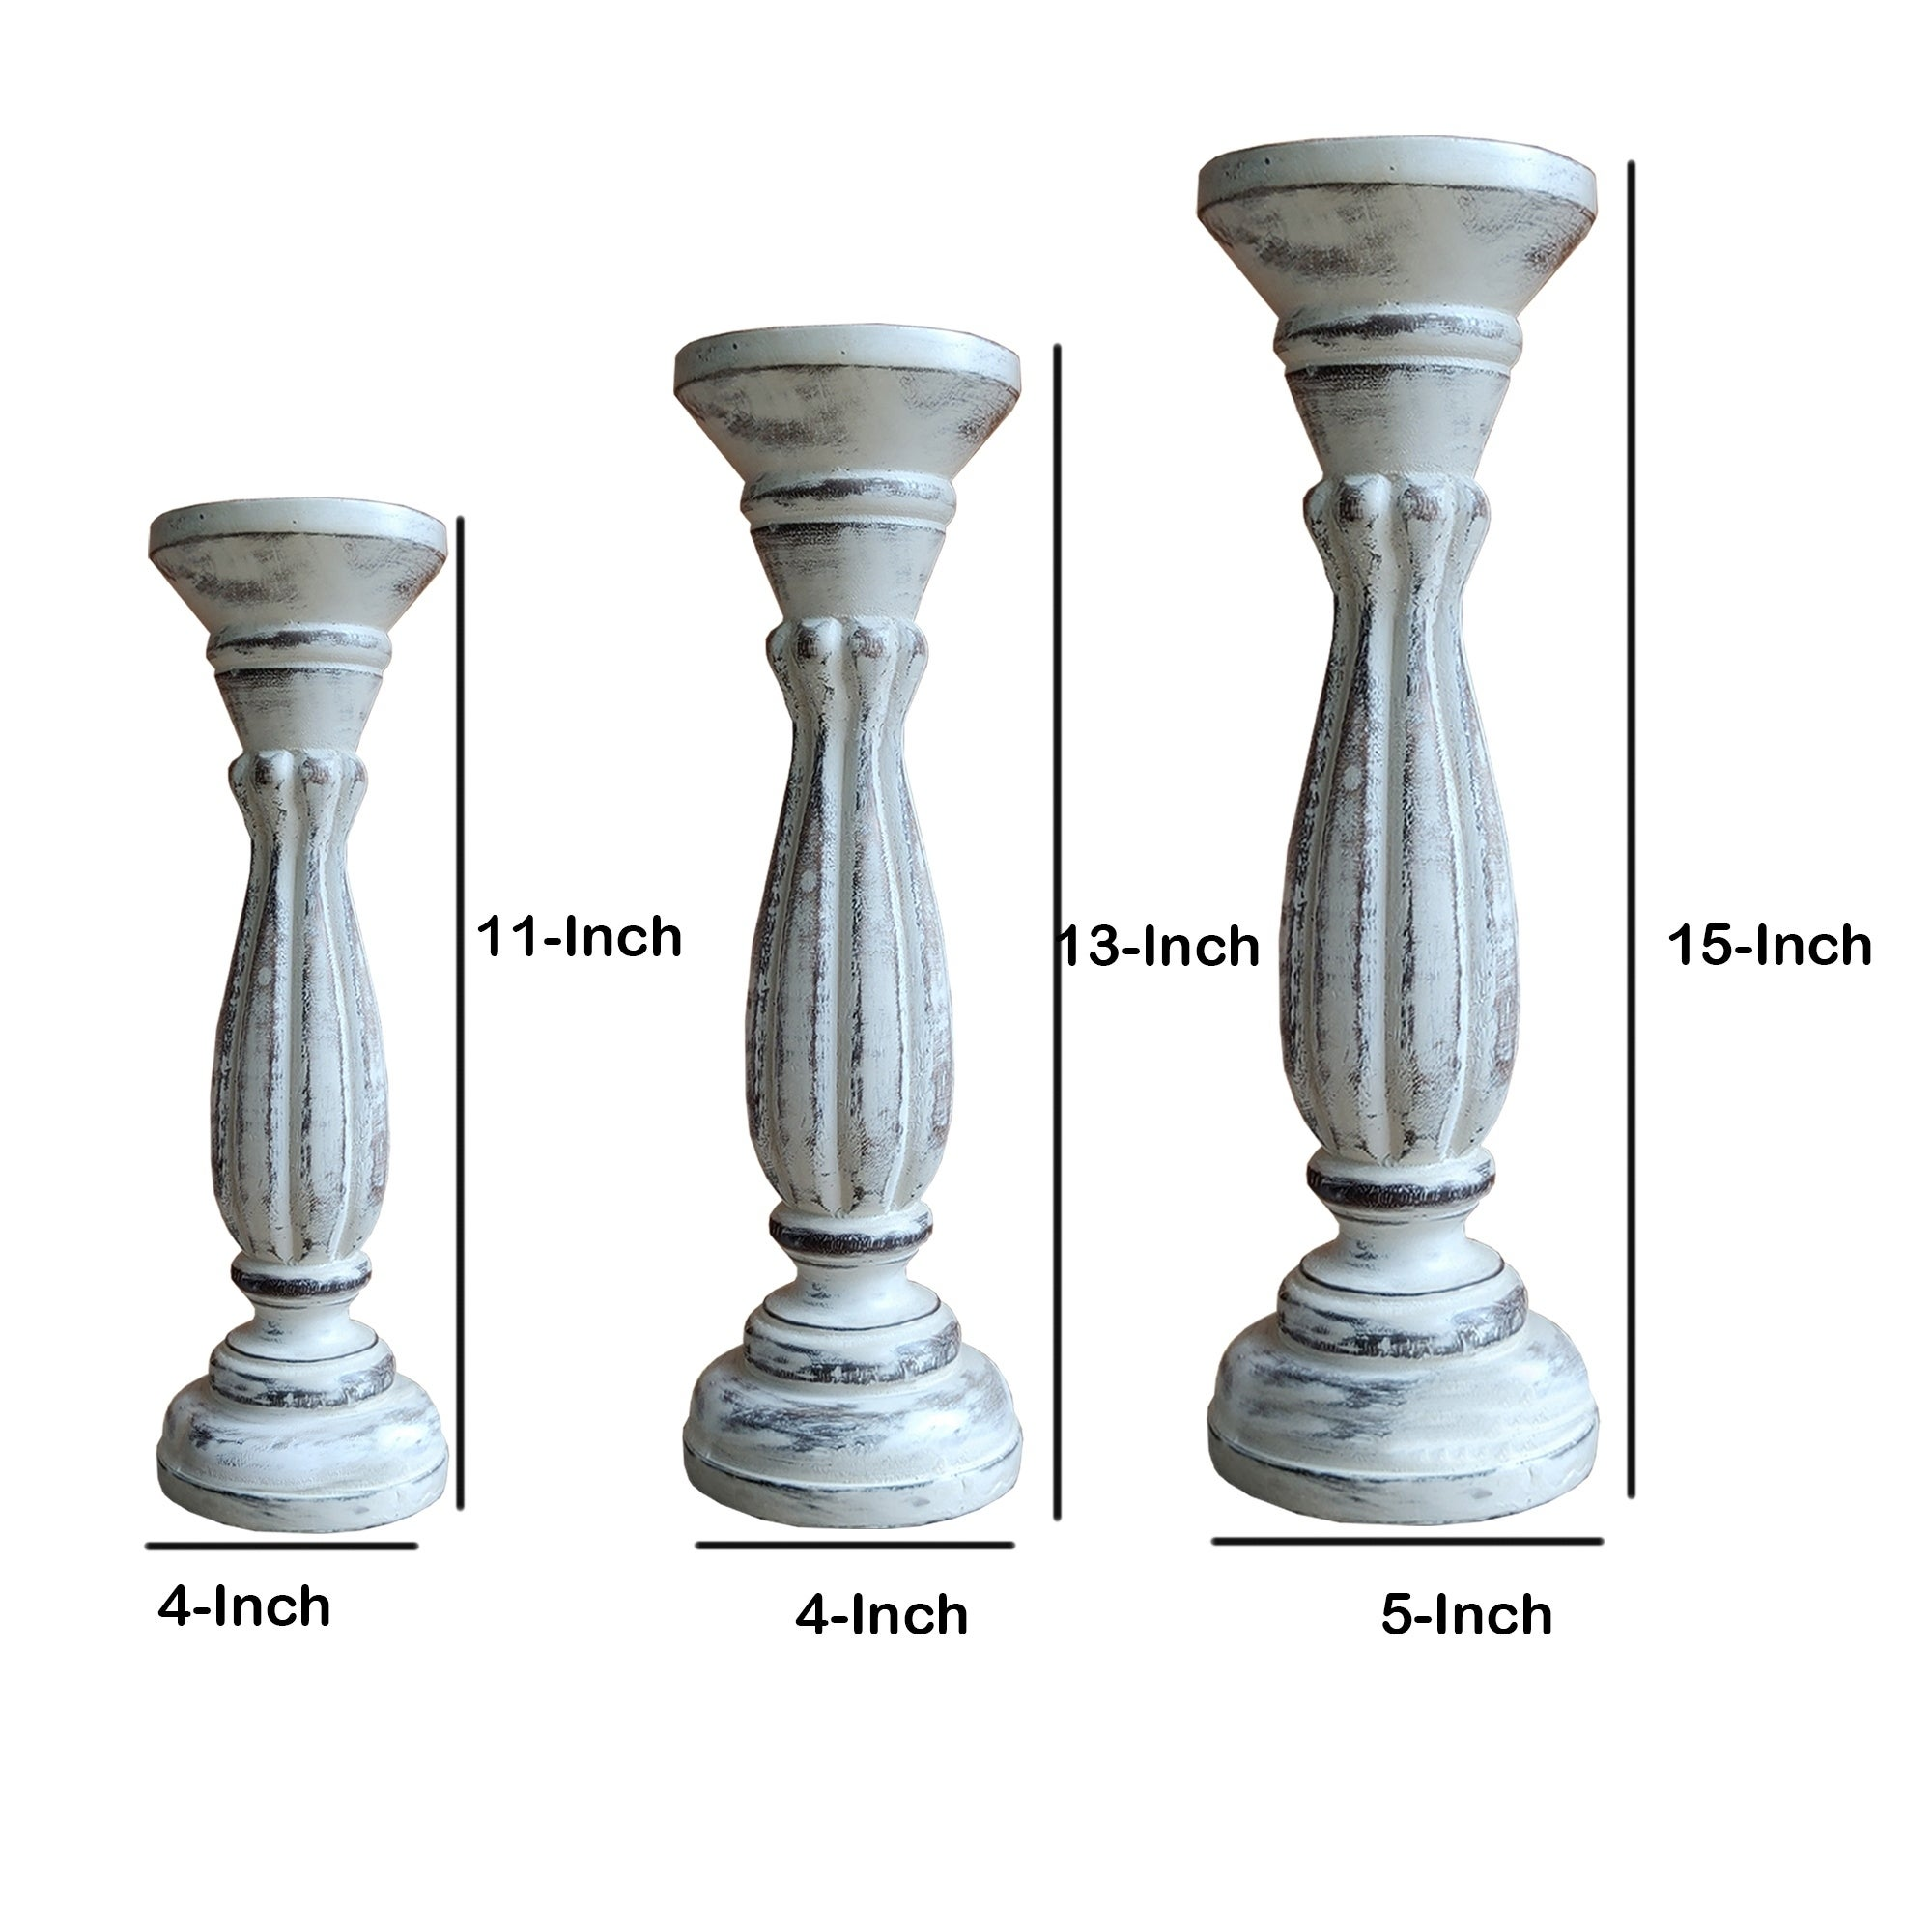 YHCWJZP Candle Holders for Table 10cm Cross Pillar Hollow Candle Mold Handmade DIY Soap Making Craft Supplies